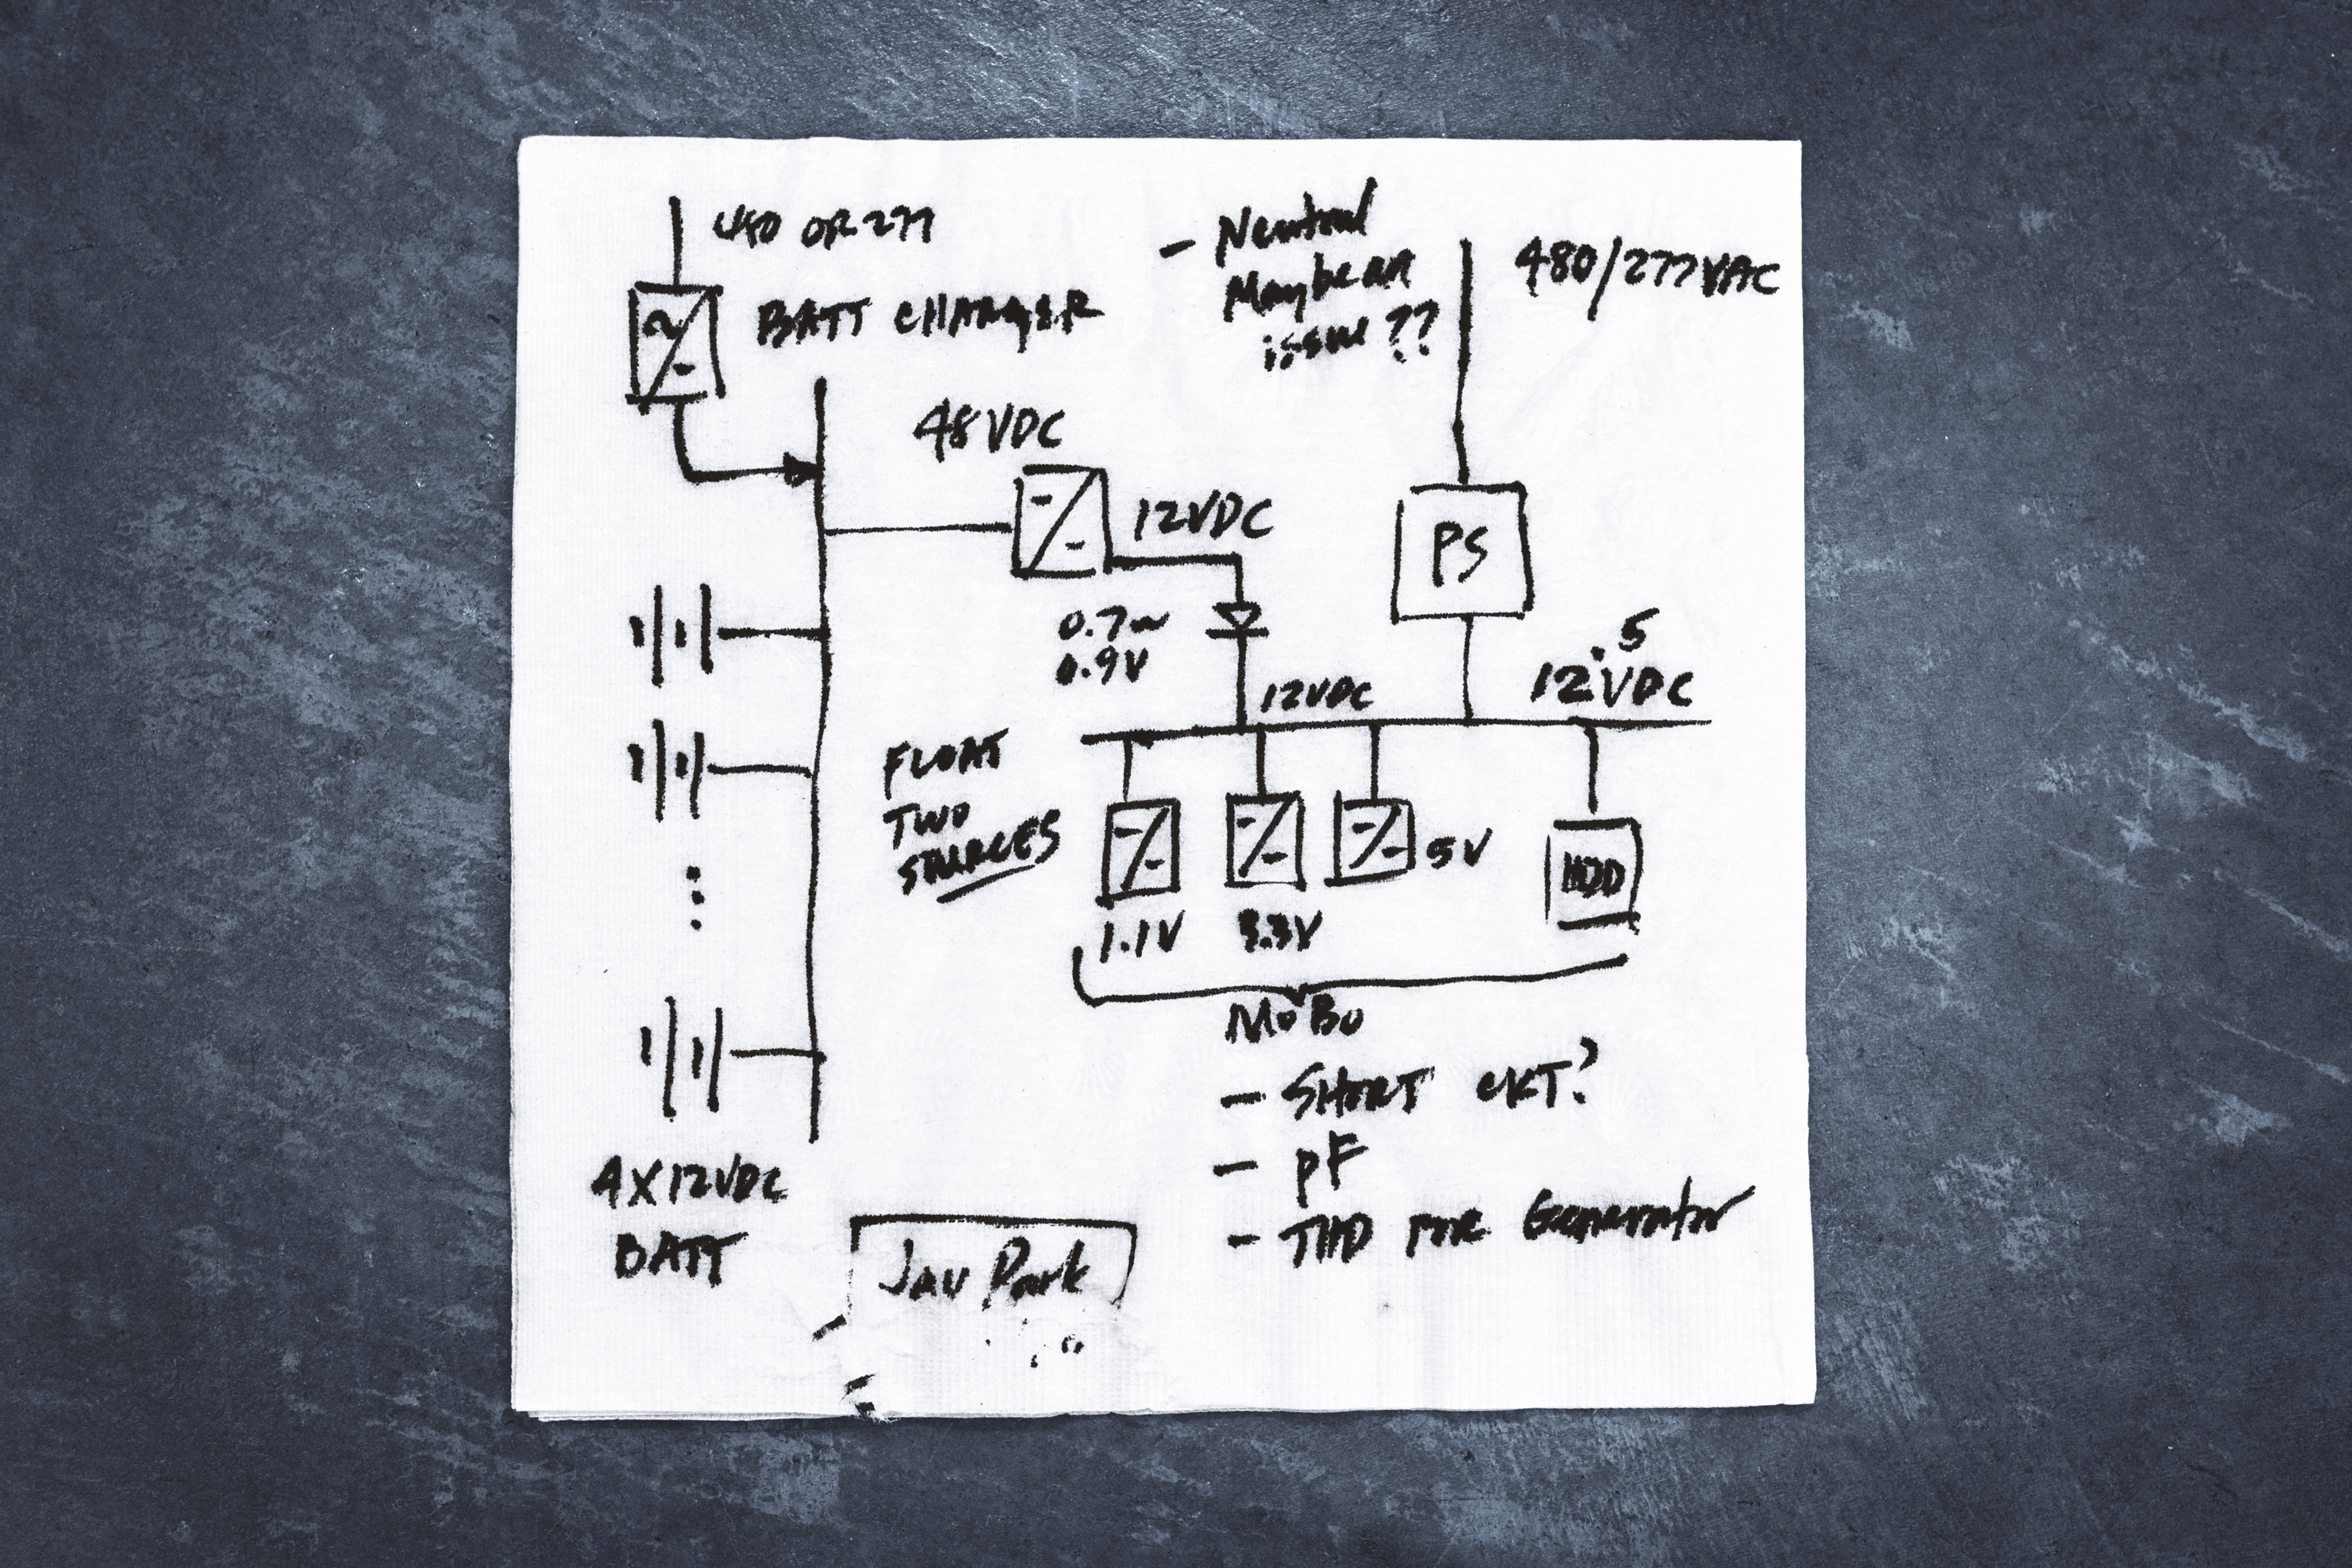 Park sketched his original idea for the data center's design on the back of a napkin.